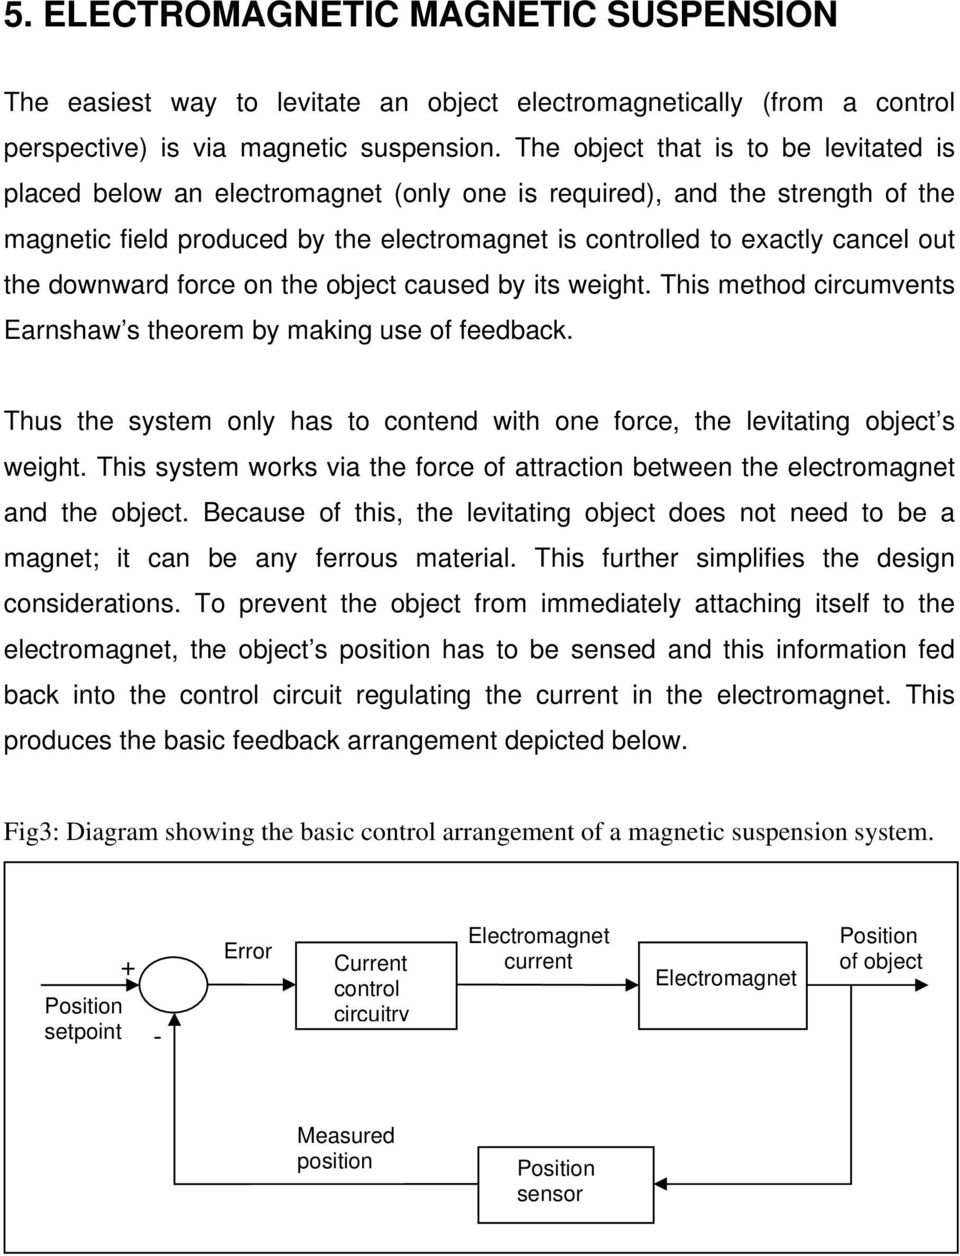 medium resolution of the downward force on the object caused by its weight this method circumvents earnshaw s